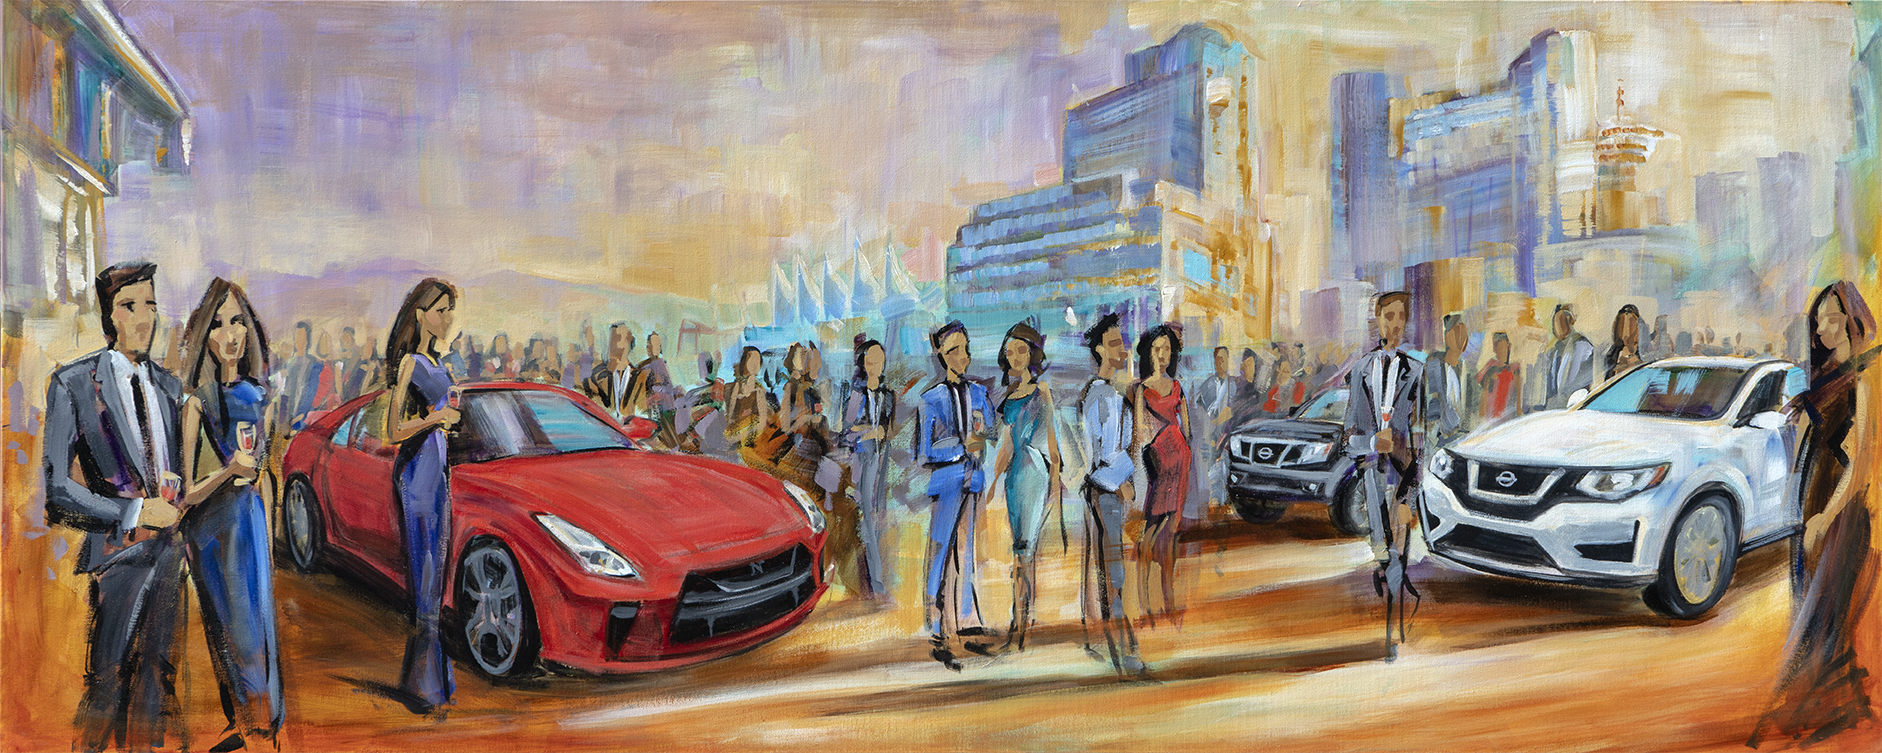 auto show 2019 live painting at the Vancouver convention center.jpg